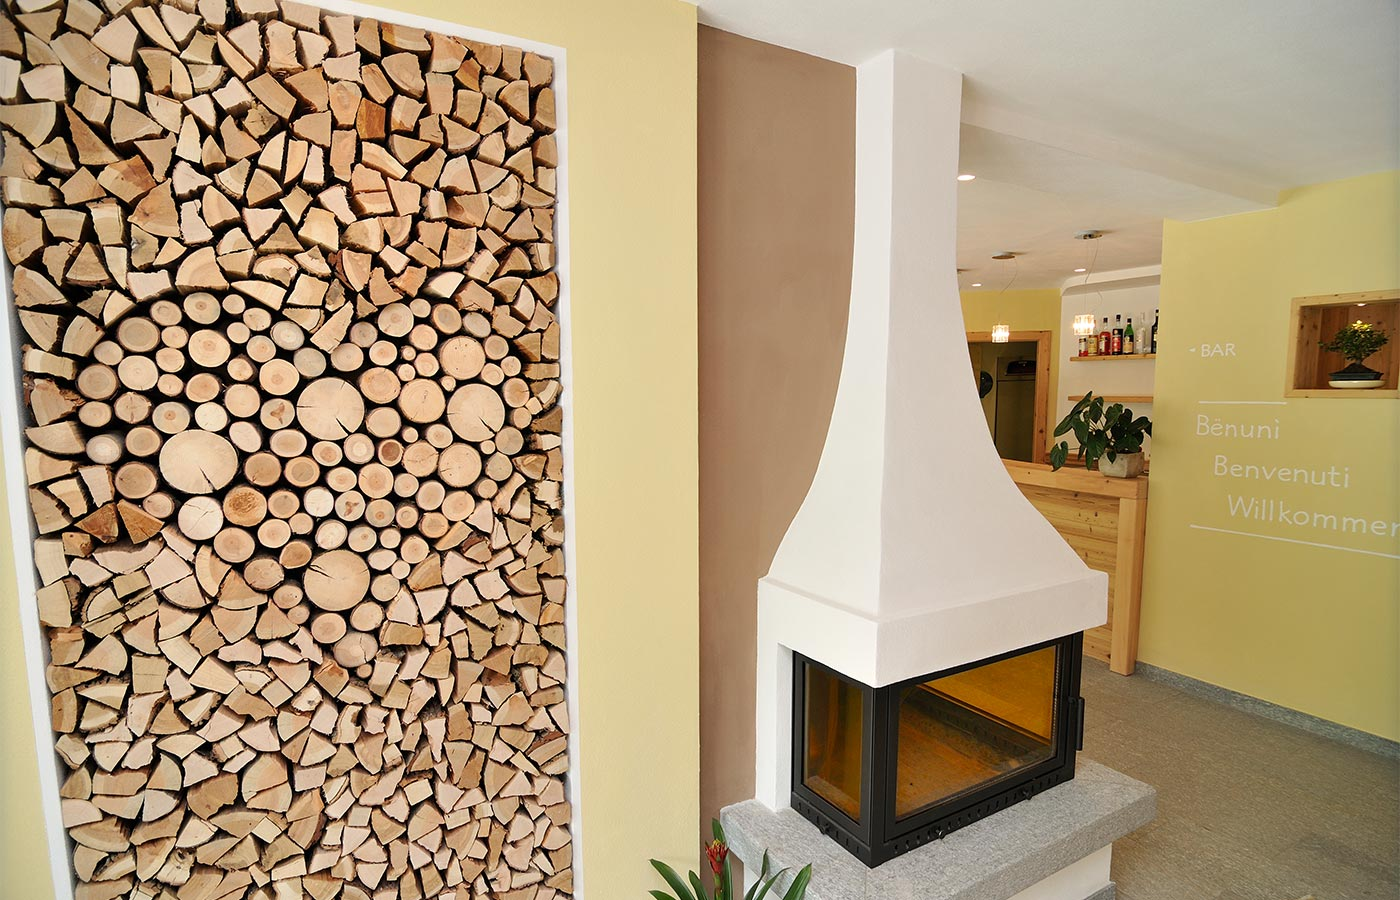 Wall entirely created from wood logs